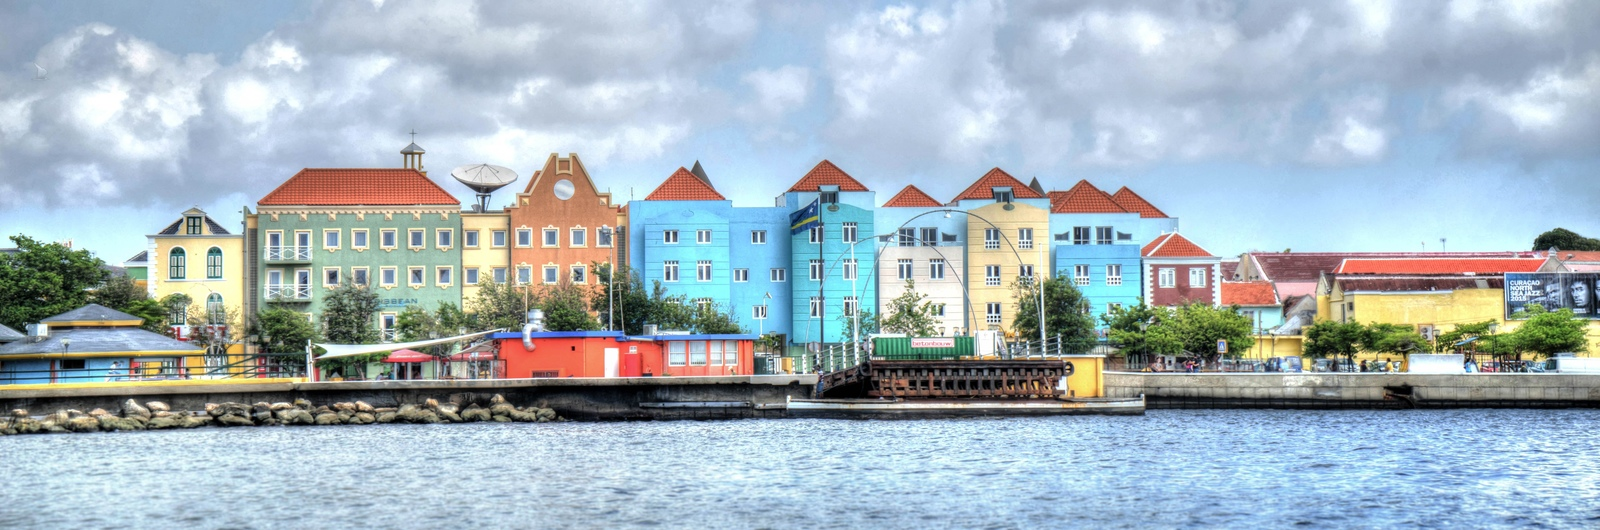 city willemstad header